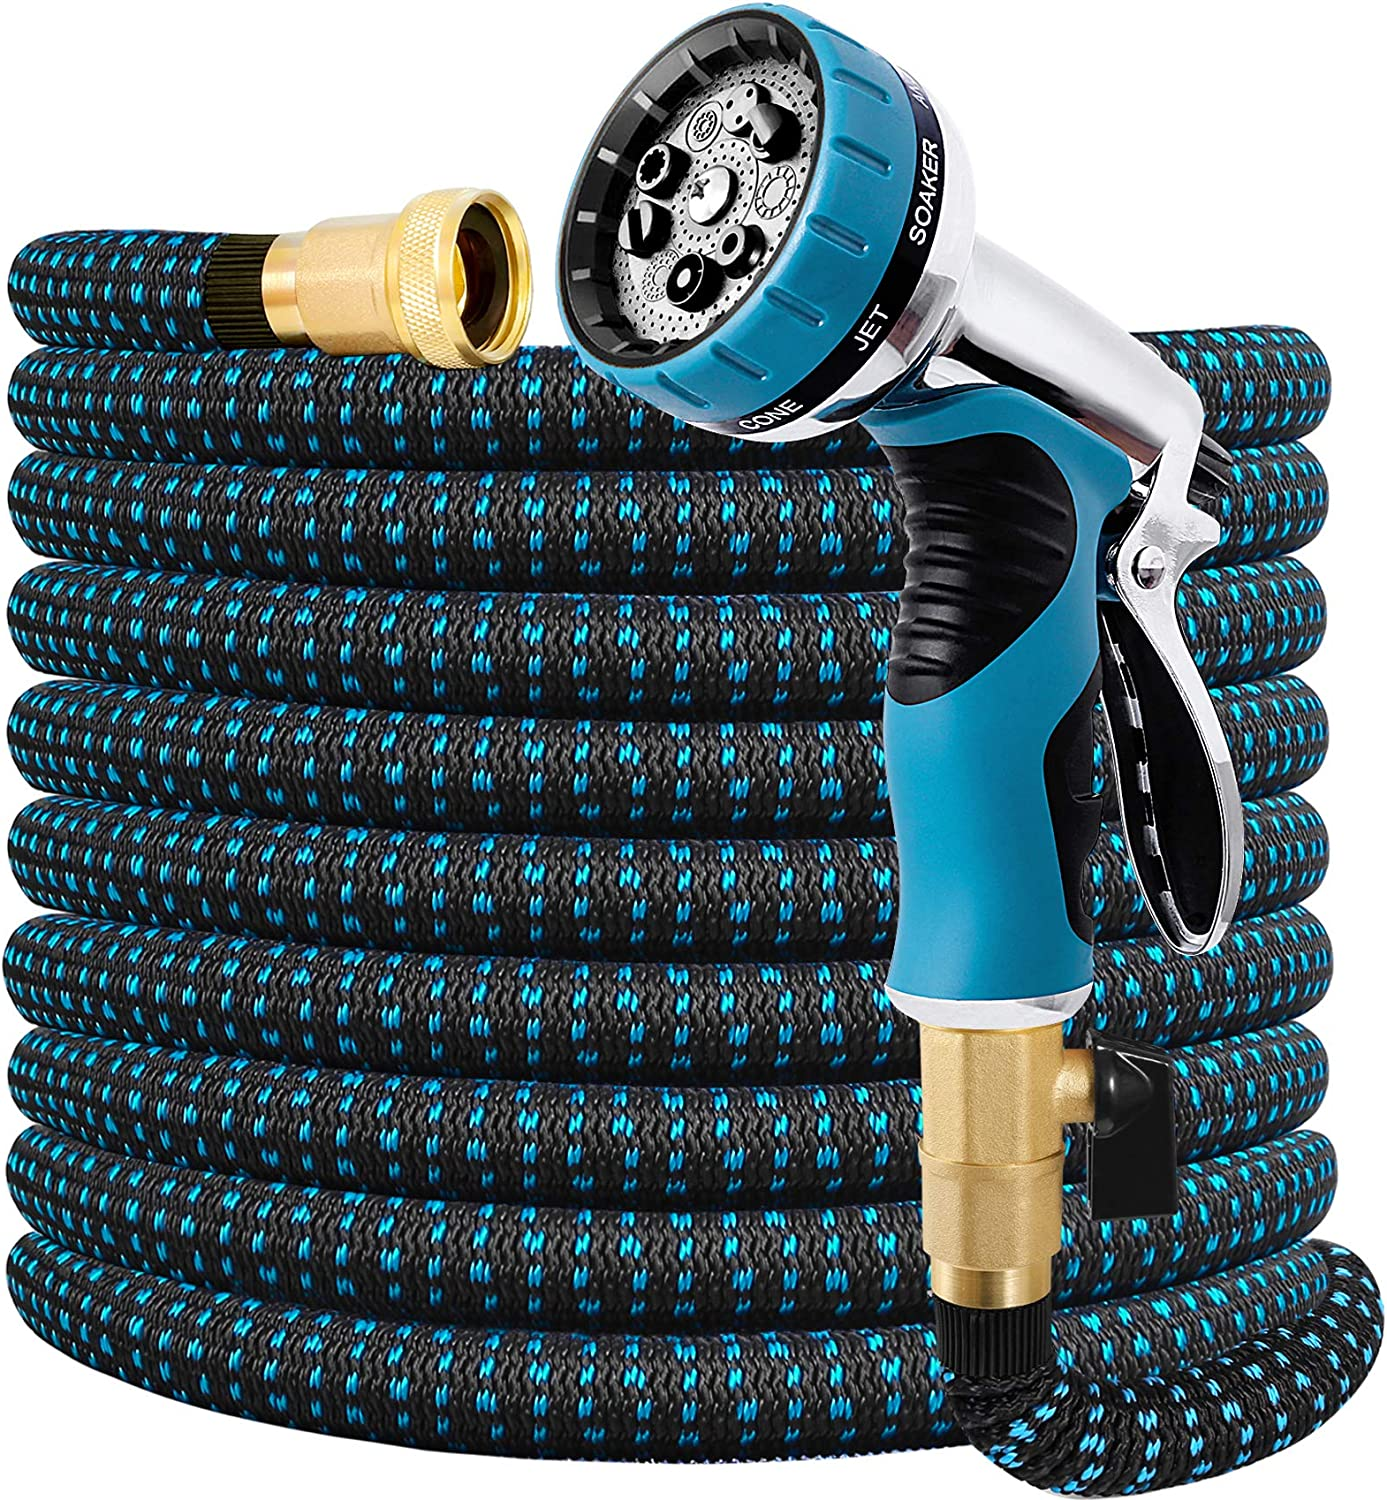 Expandable Garden Hose 50FT Water Hose with 9 Function Nozzle and Durable 3-Layers Latex, Extra Strength 3750D Flexible Hose with 3/4